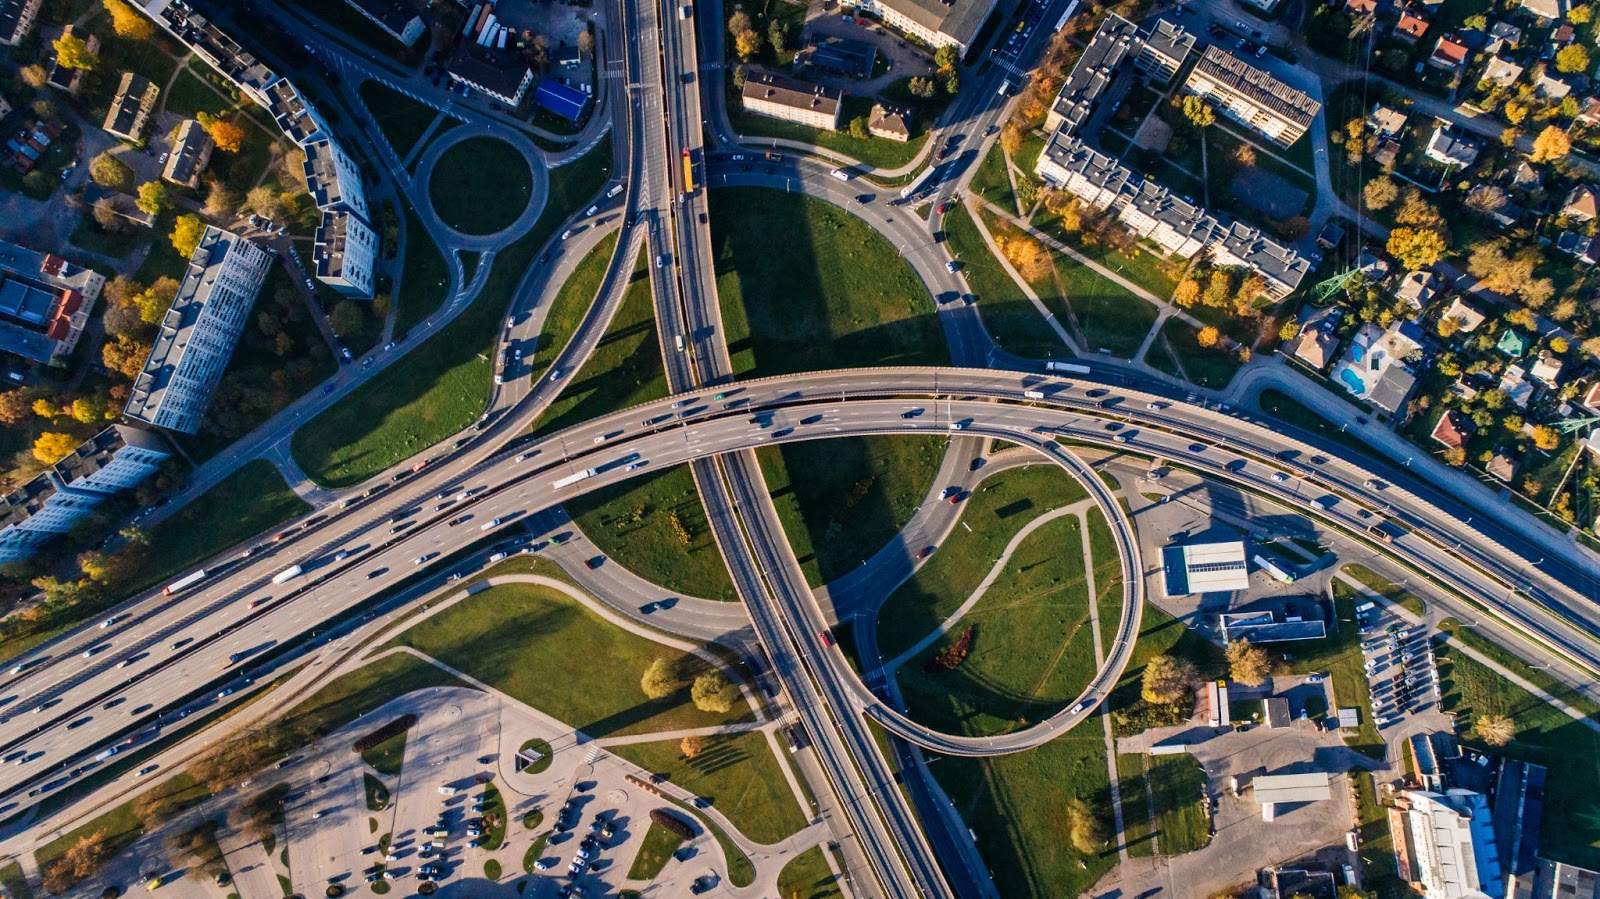 Aerial view of a highway system with on and off ramps with lots of driving cars.